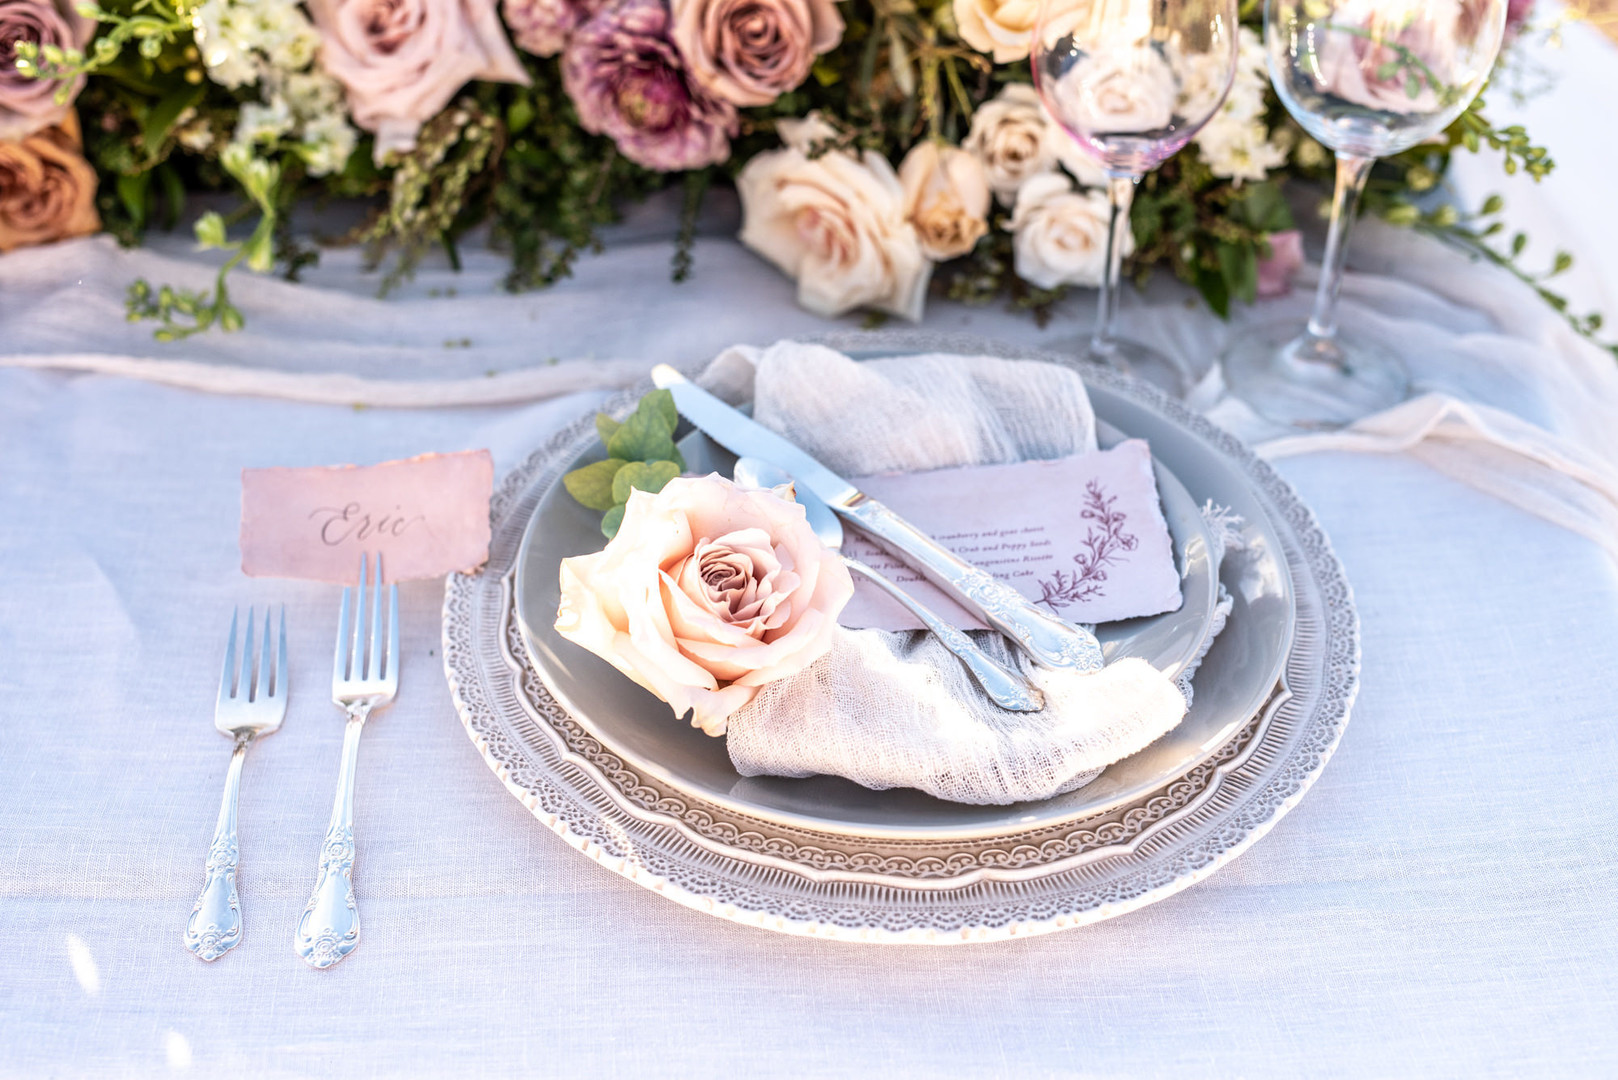 peach rose place setting for wedding